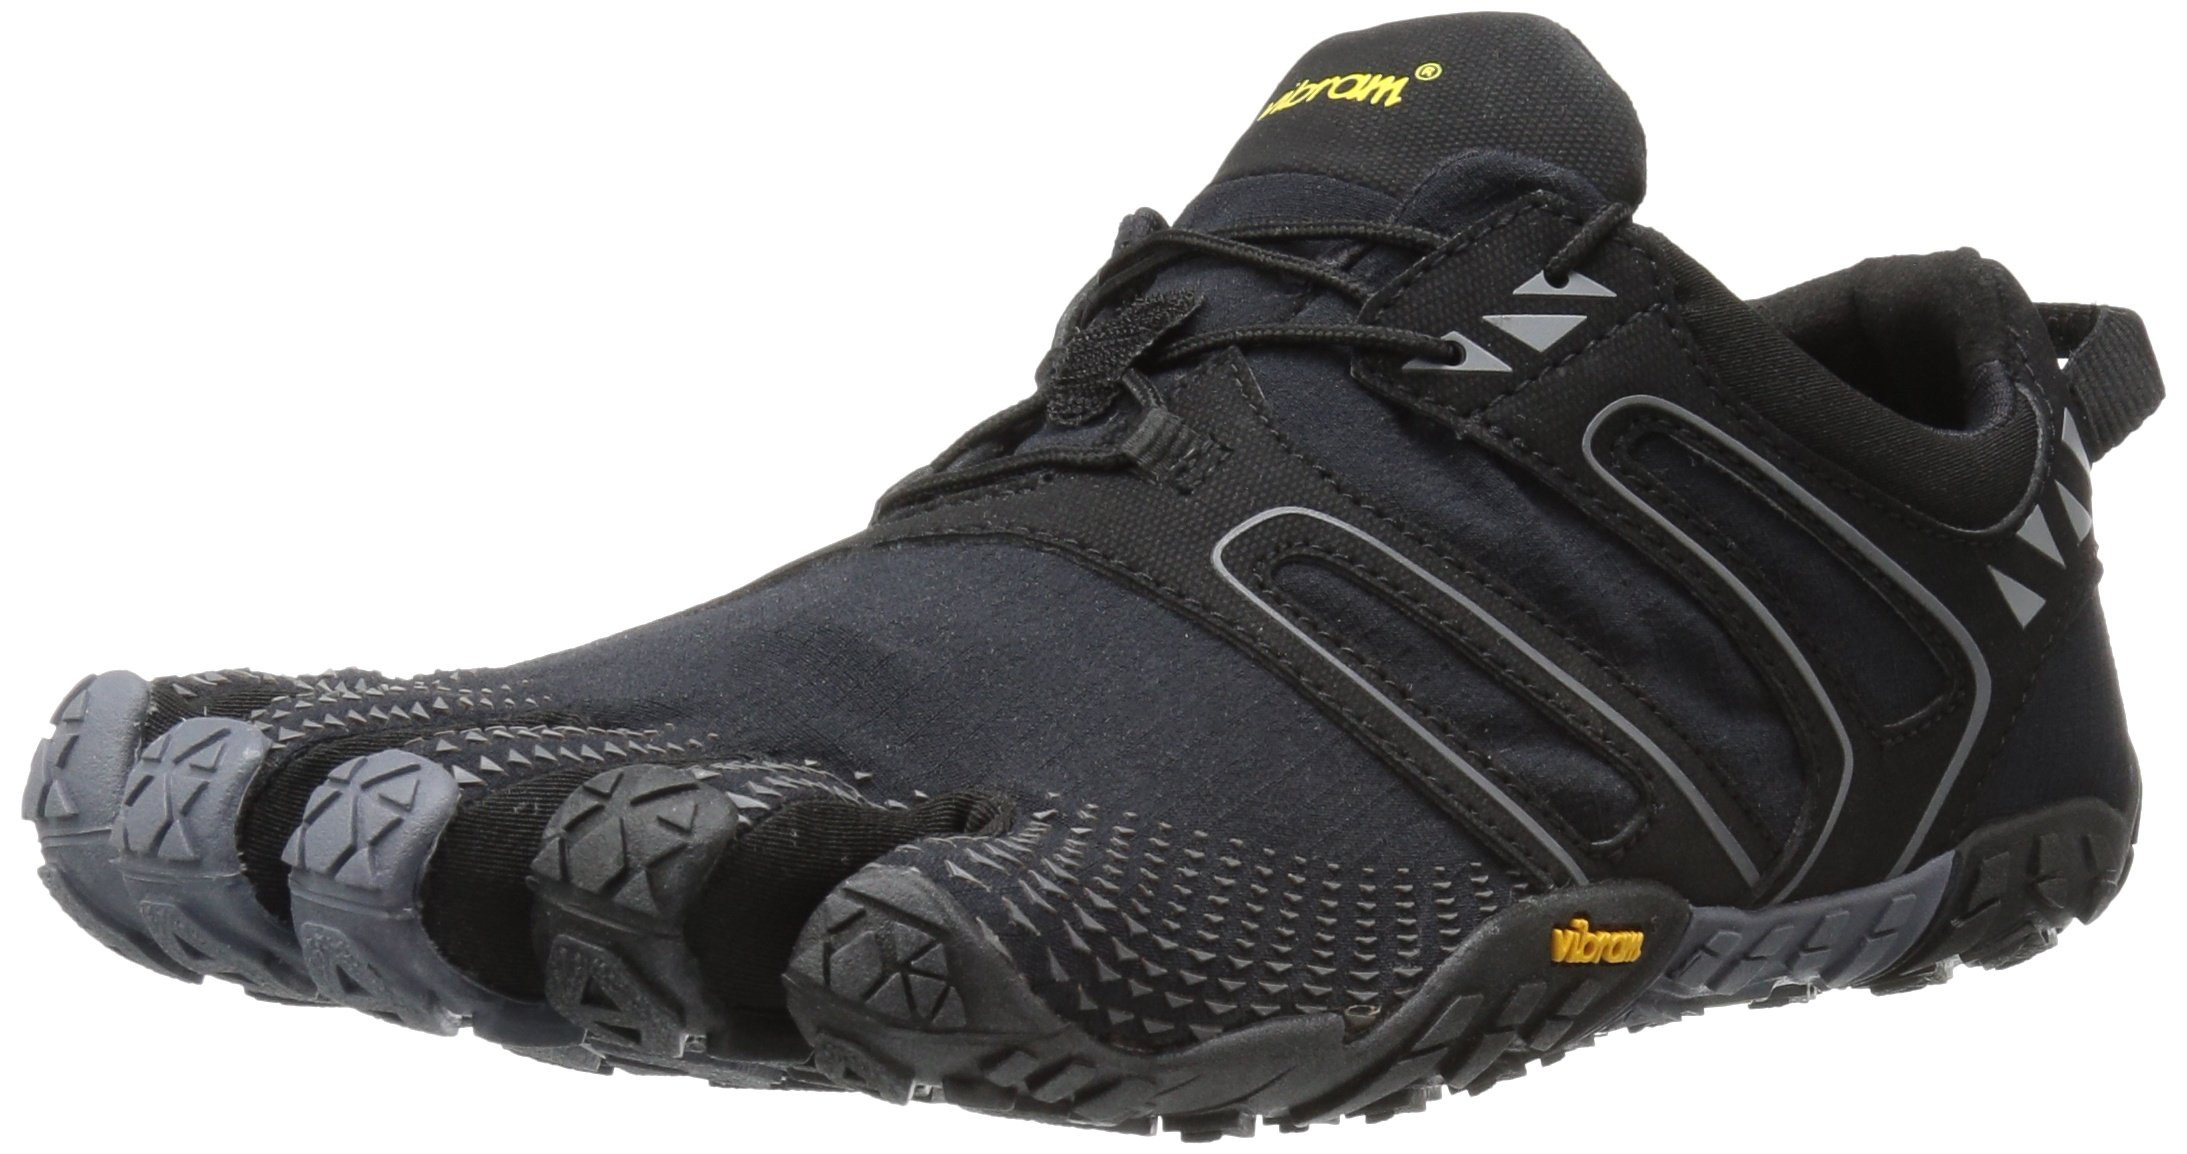 Vibram Men's V Trail Runner, Black/Grey, 8-8.5 M US/40 EU